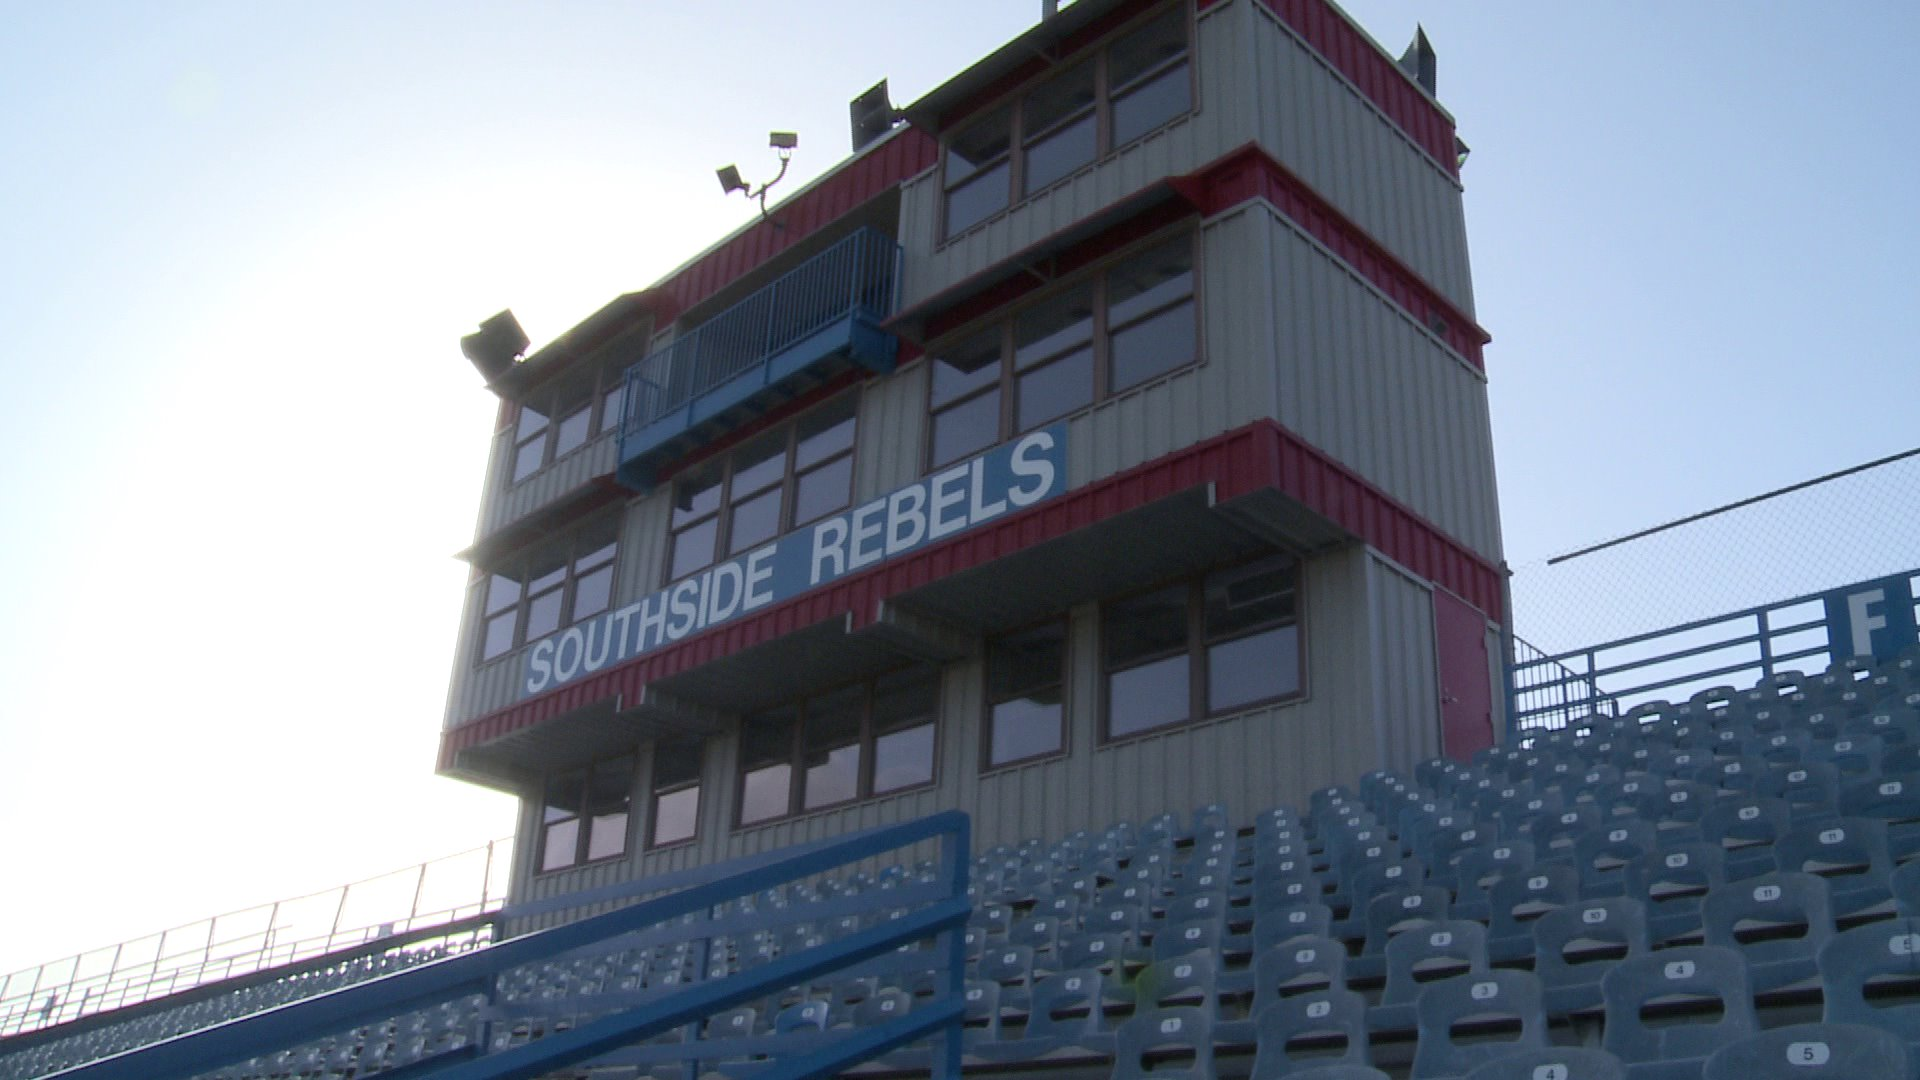 southside rebels